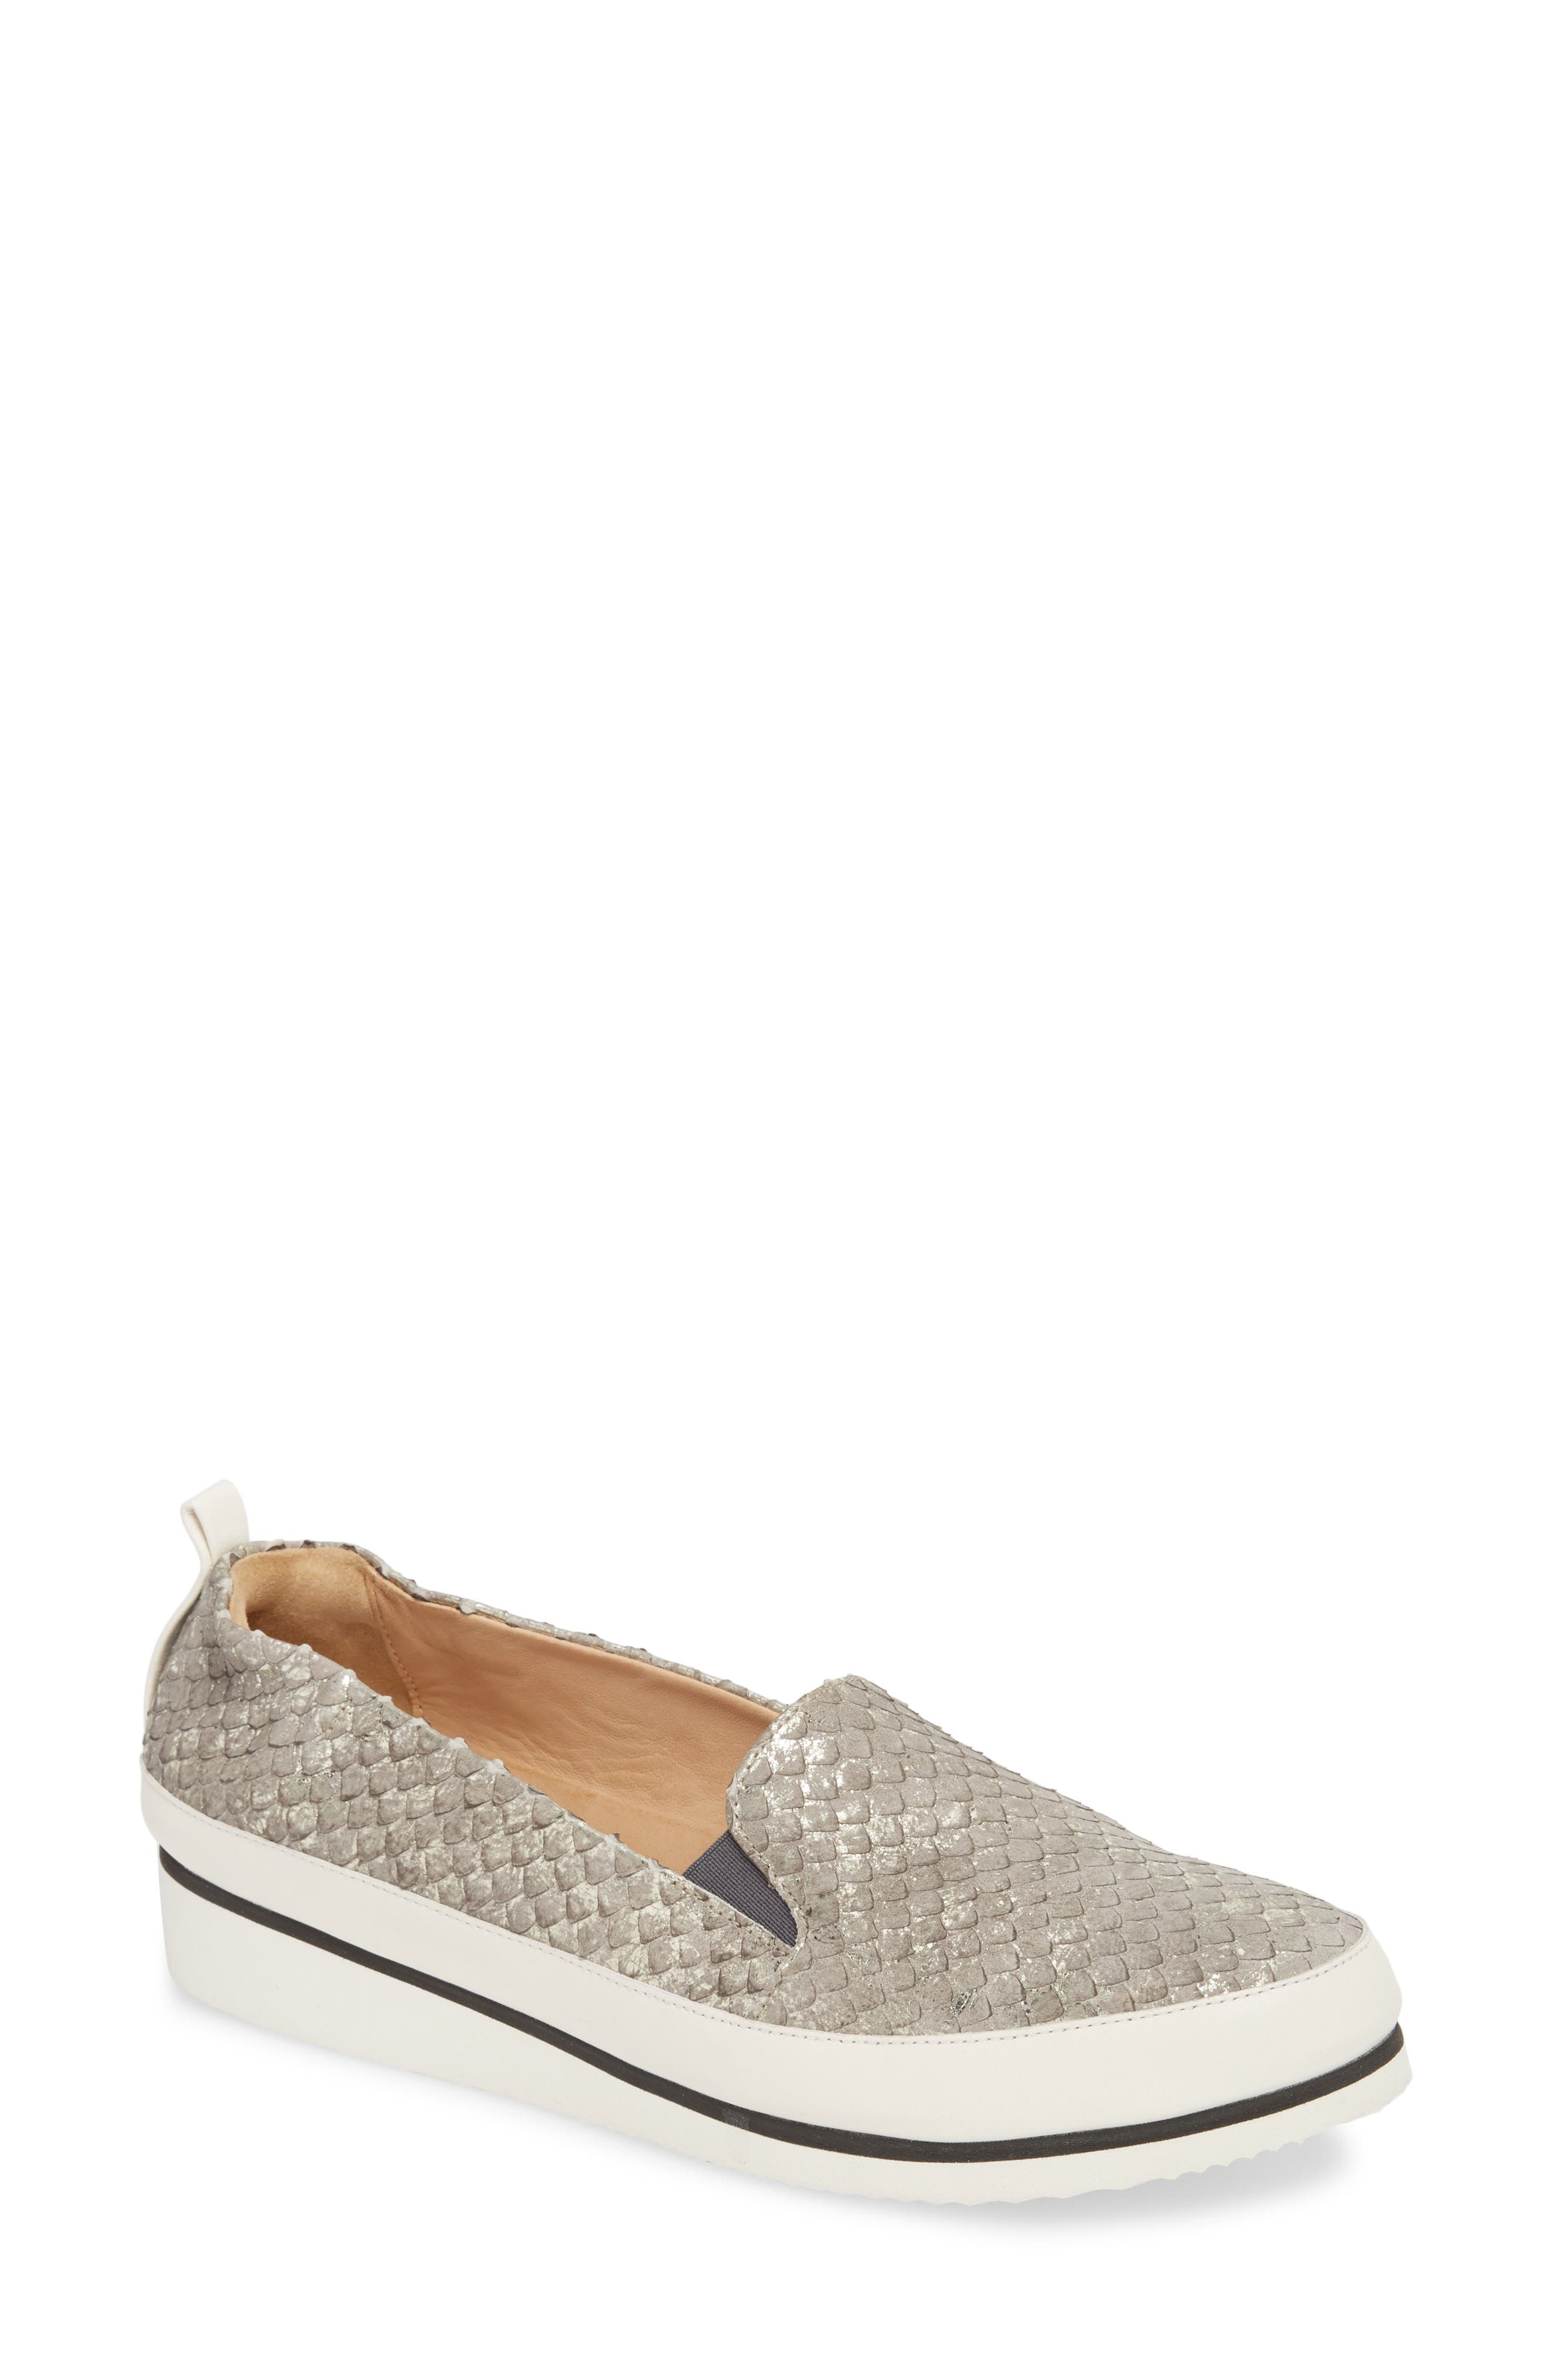 Nell Slip-On Sneaker,                         Main,                         color, Pewter Leather